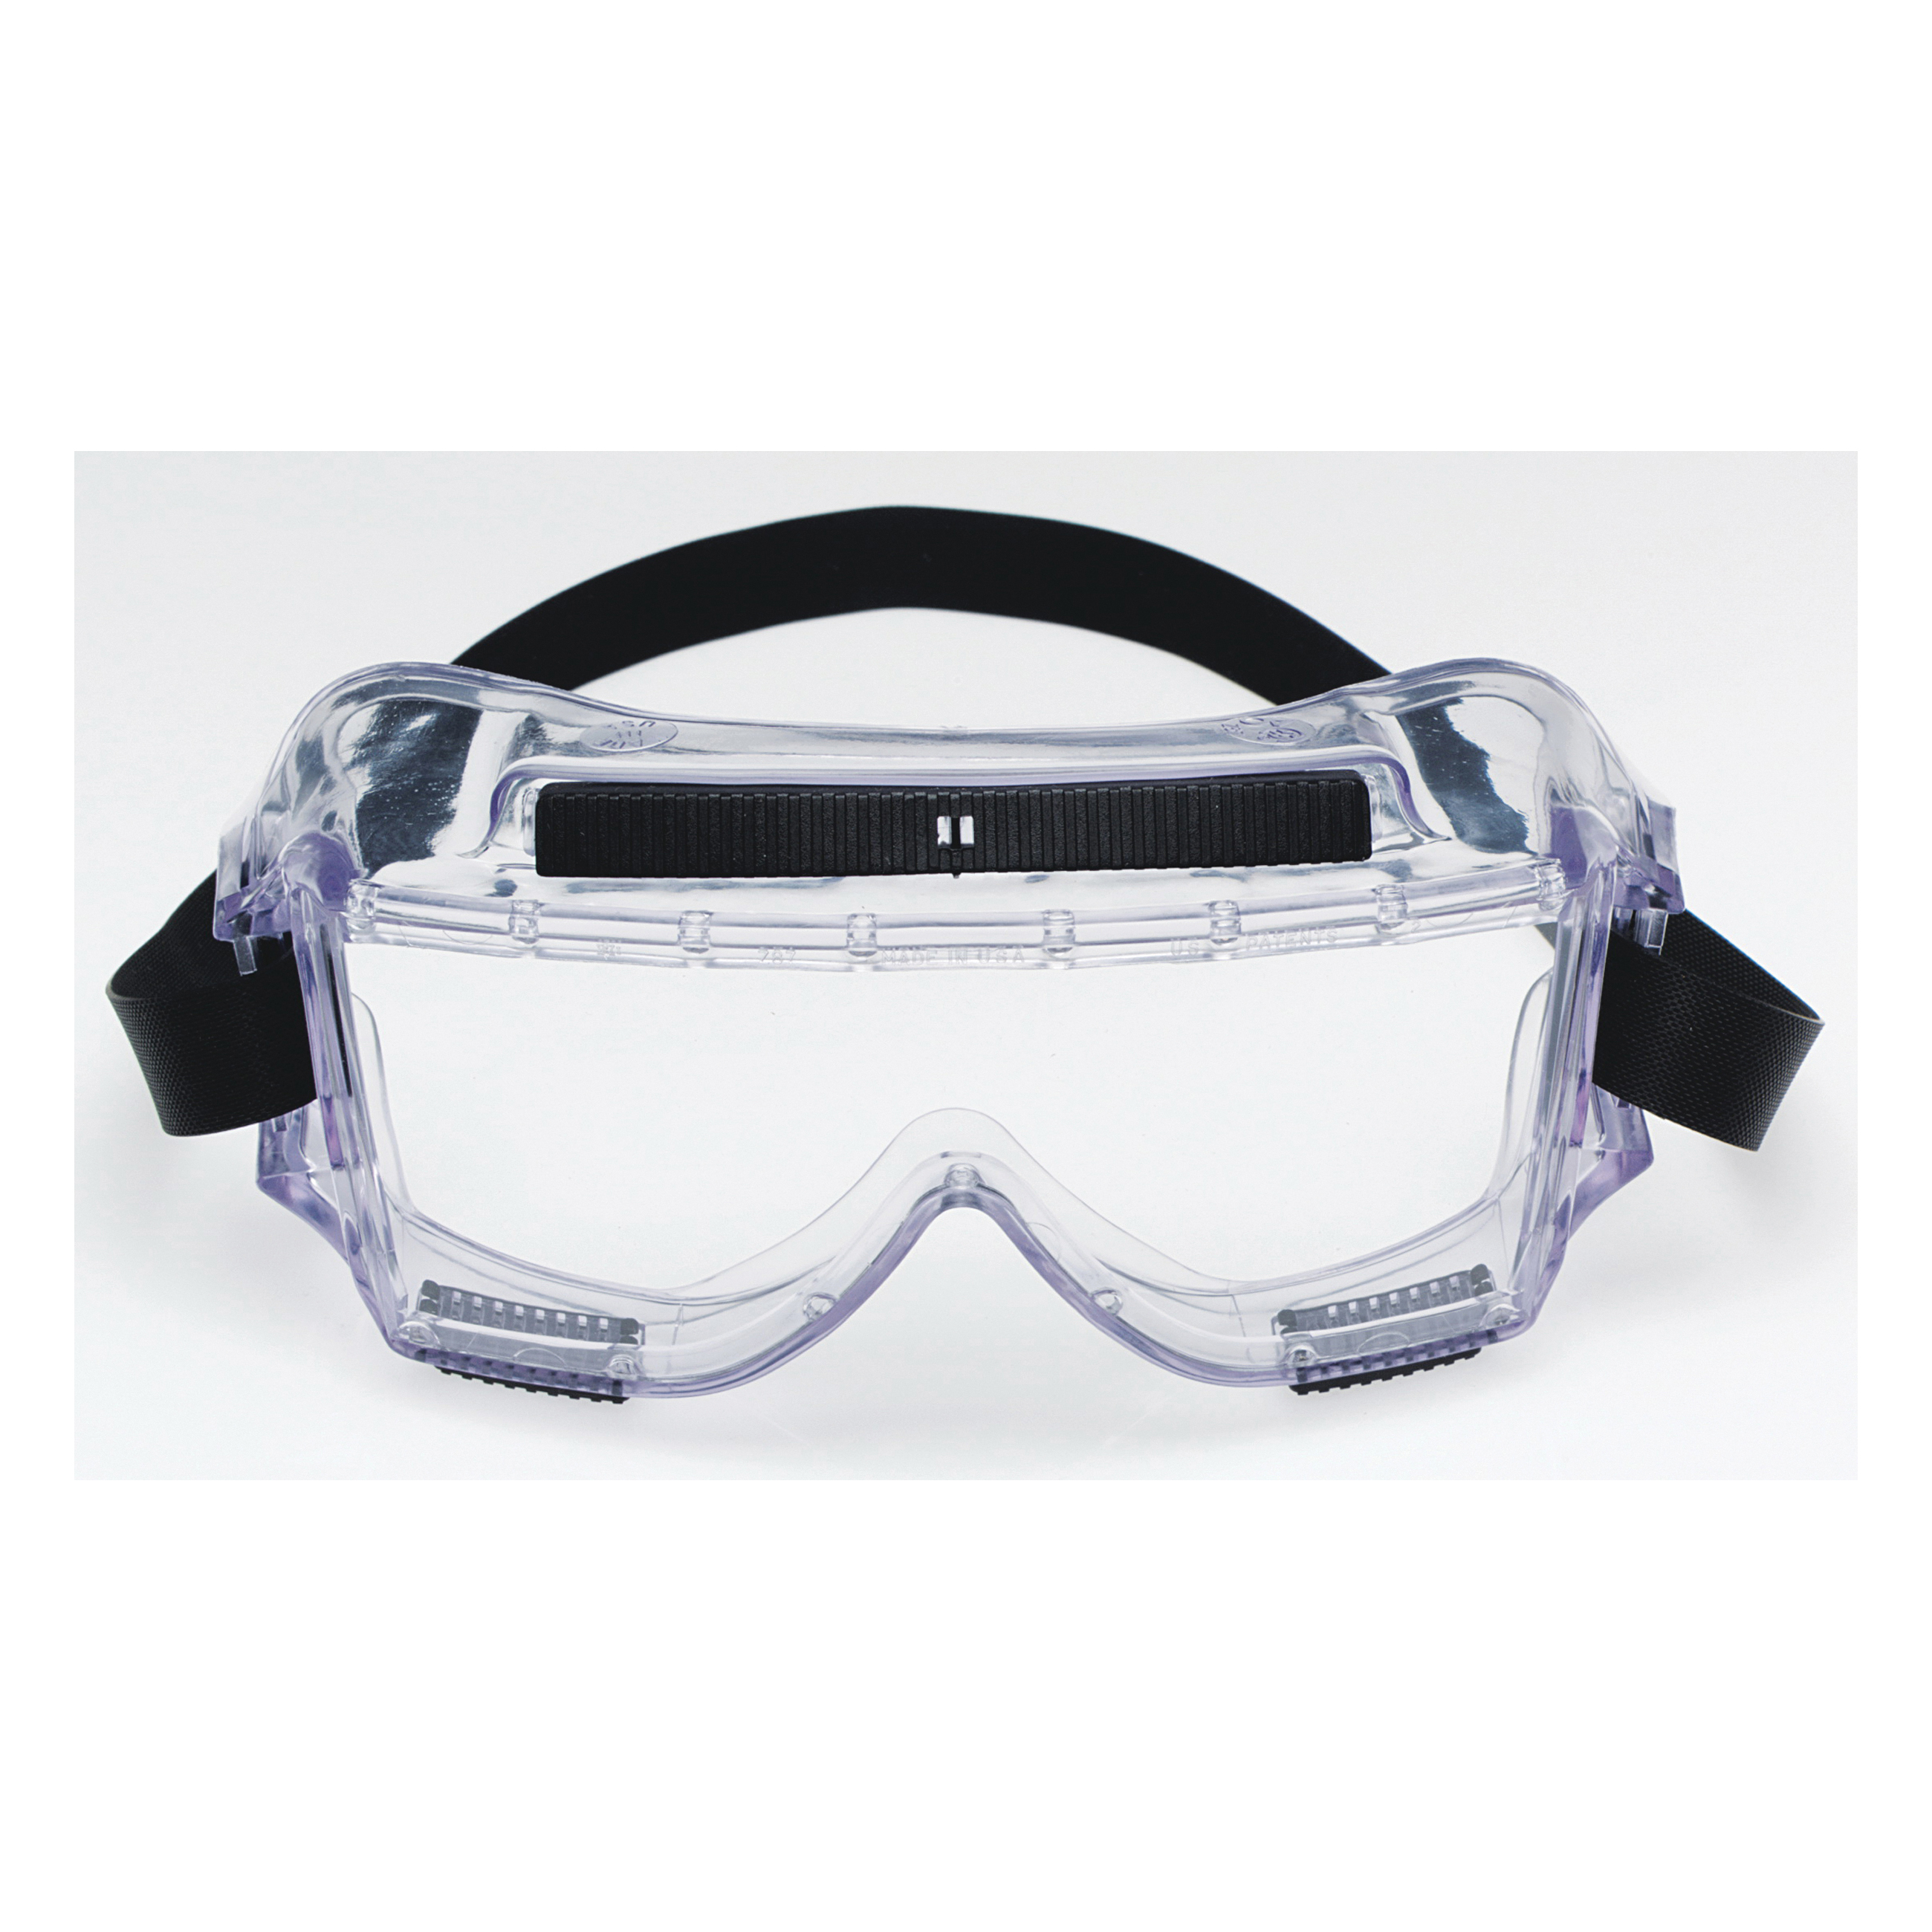 3M™ Centurion™ 078371-62389 40304-00000-10 Value Safety Goggles, Anti-Fog/Impact Resistant/UV-Protective Clear Polycarbonate Lens, 99.9% % UV Protection, Neoprene Strap, Specifications Met: ANSI Z87.1-2010, CSA Z94.3-2007